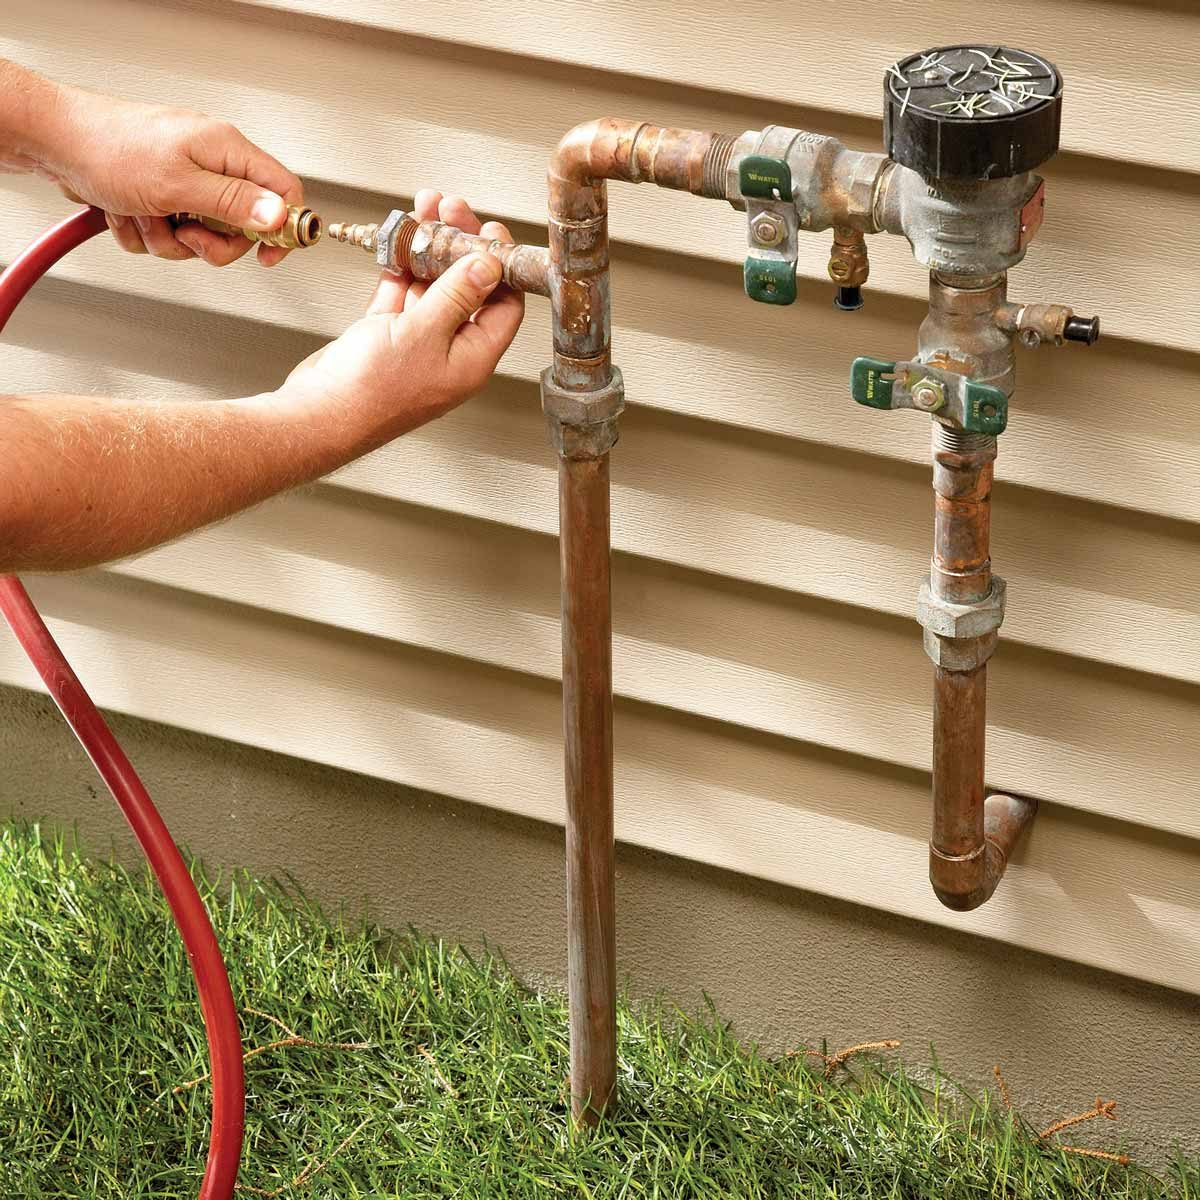 43 Fall Maintenance Must-Dos and One Thing You Shouldn't Do